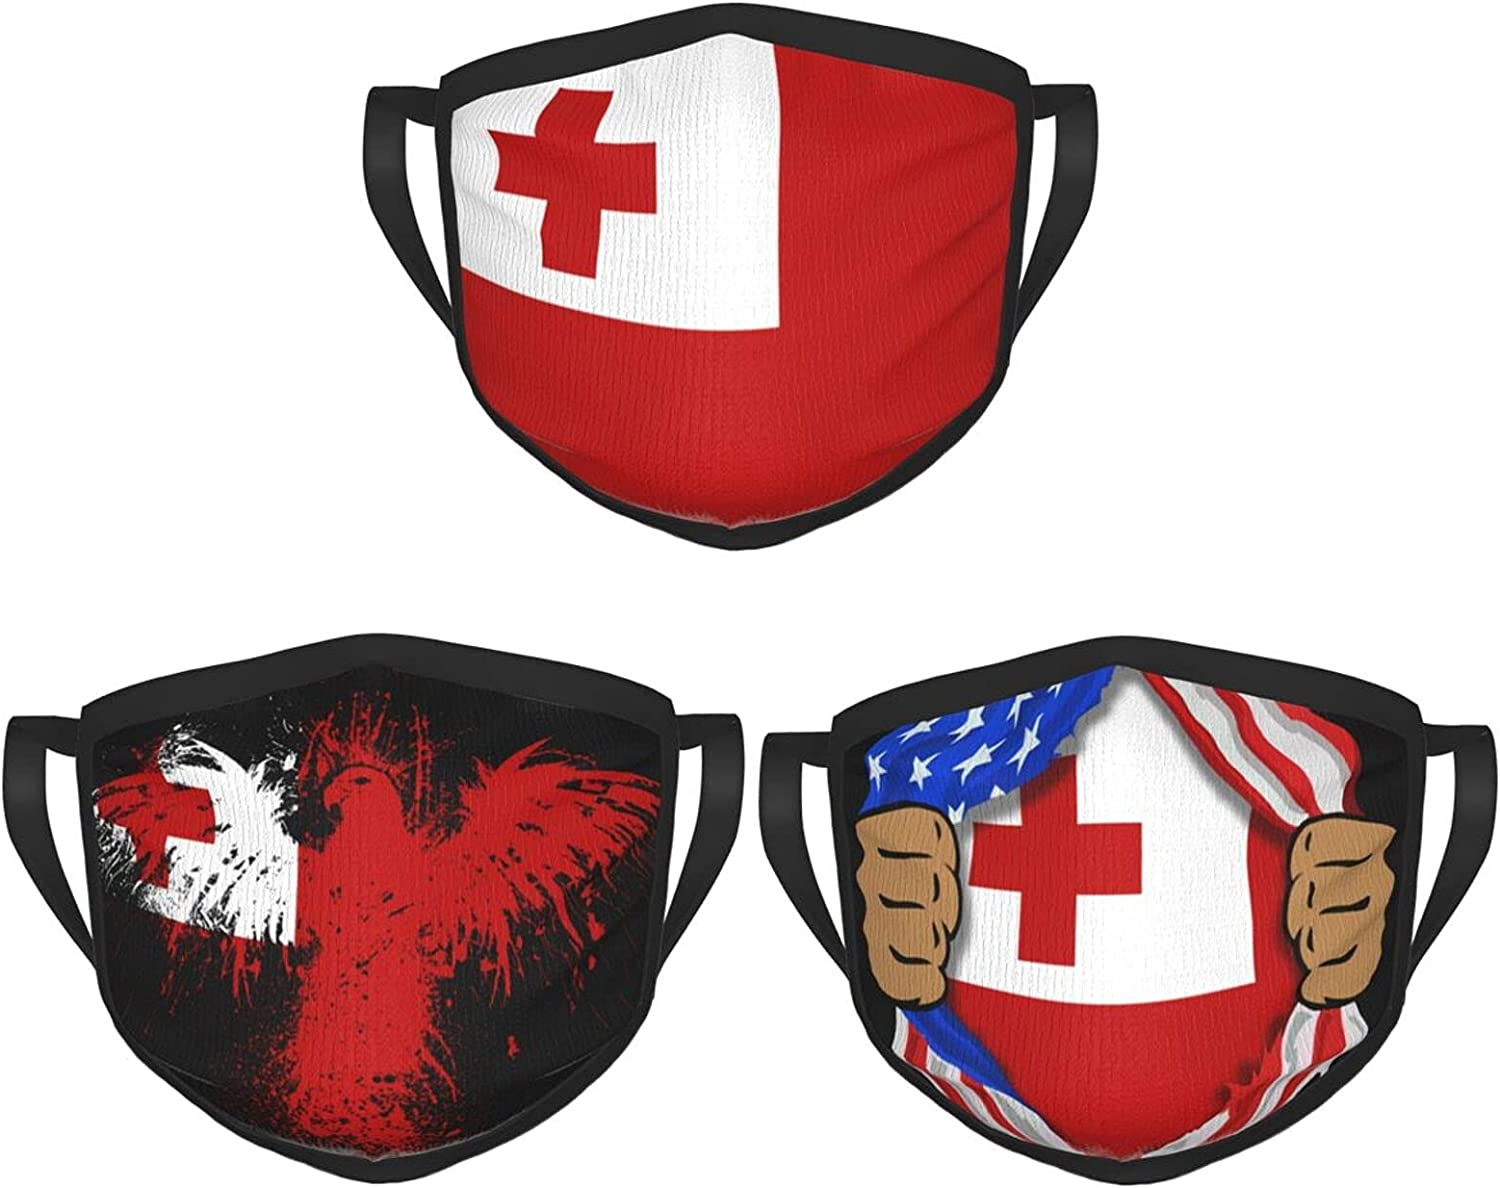 Blood Inside Me Tonga 3 Packs Of Reusable And Washable Face Masks Balaclava Masks For Men And Women